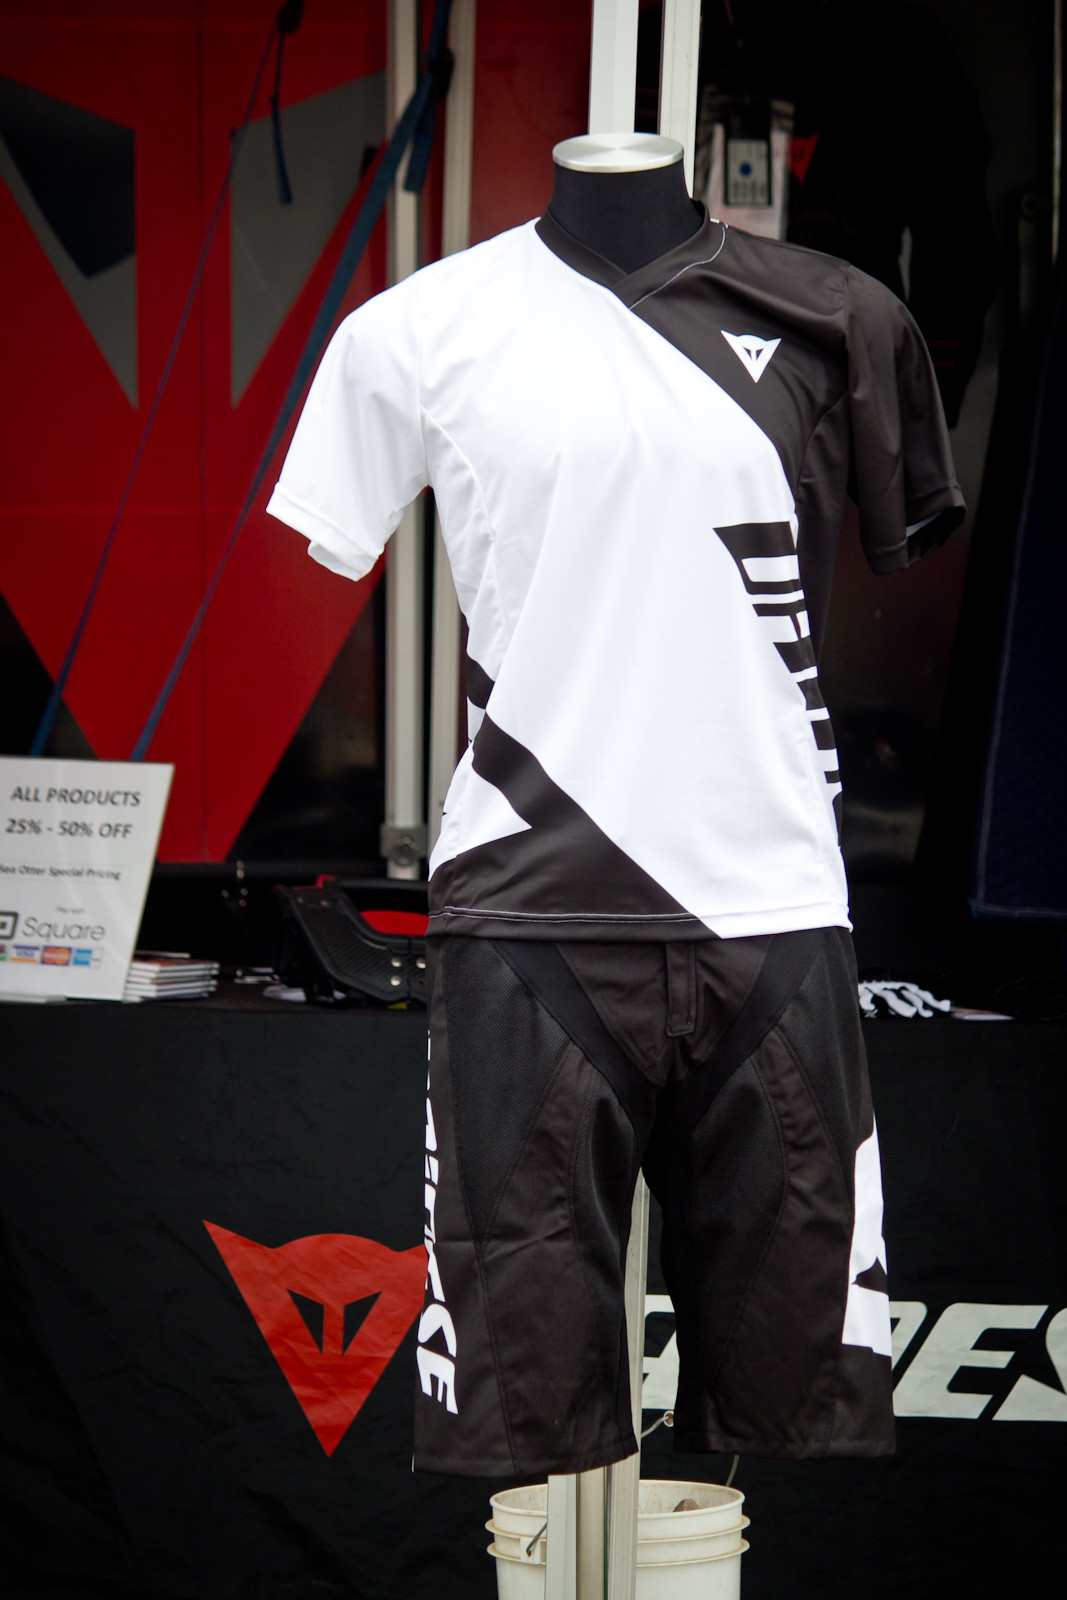 Dainese Hucker Shorts and Basanite Jersey - Sea Otter Classic - 2014 Sea Otter Classic Pit Bits - Final Edition - Mountain Biking Pictures - Vital MTB